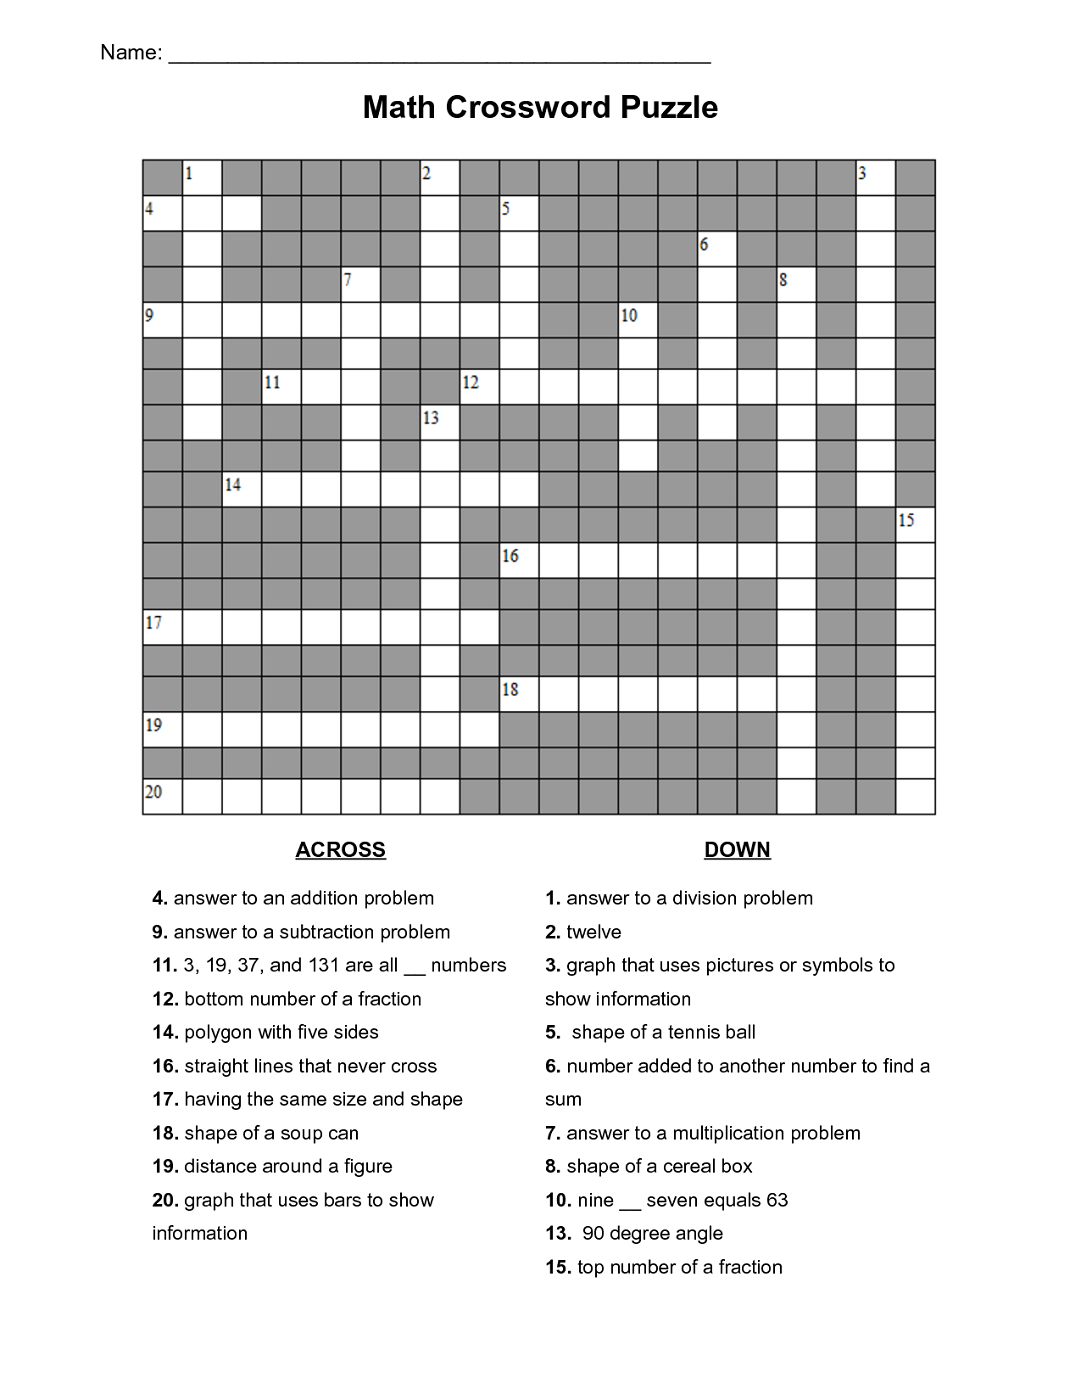 Maths Puzzles For Kids Crossword | Activities | Maths Puzzles, Kids - Free Printable Crossword Puzzle #7 Answers